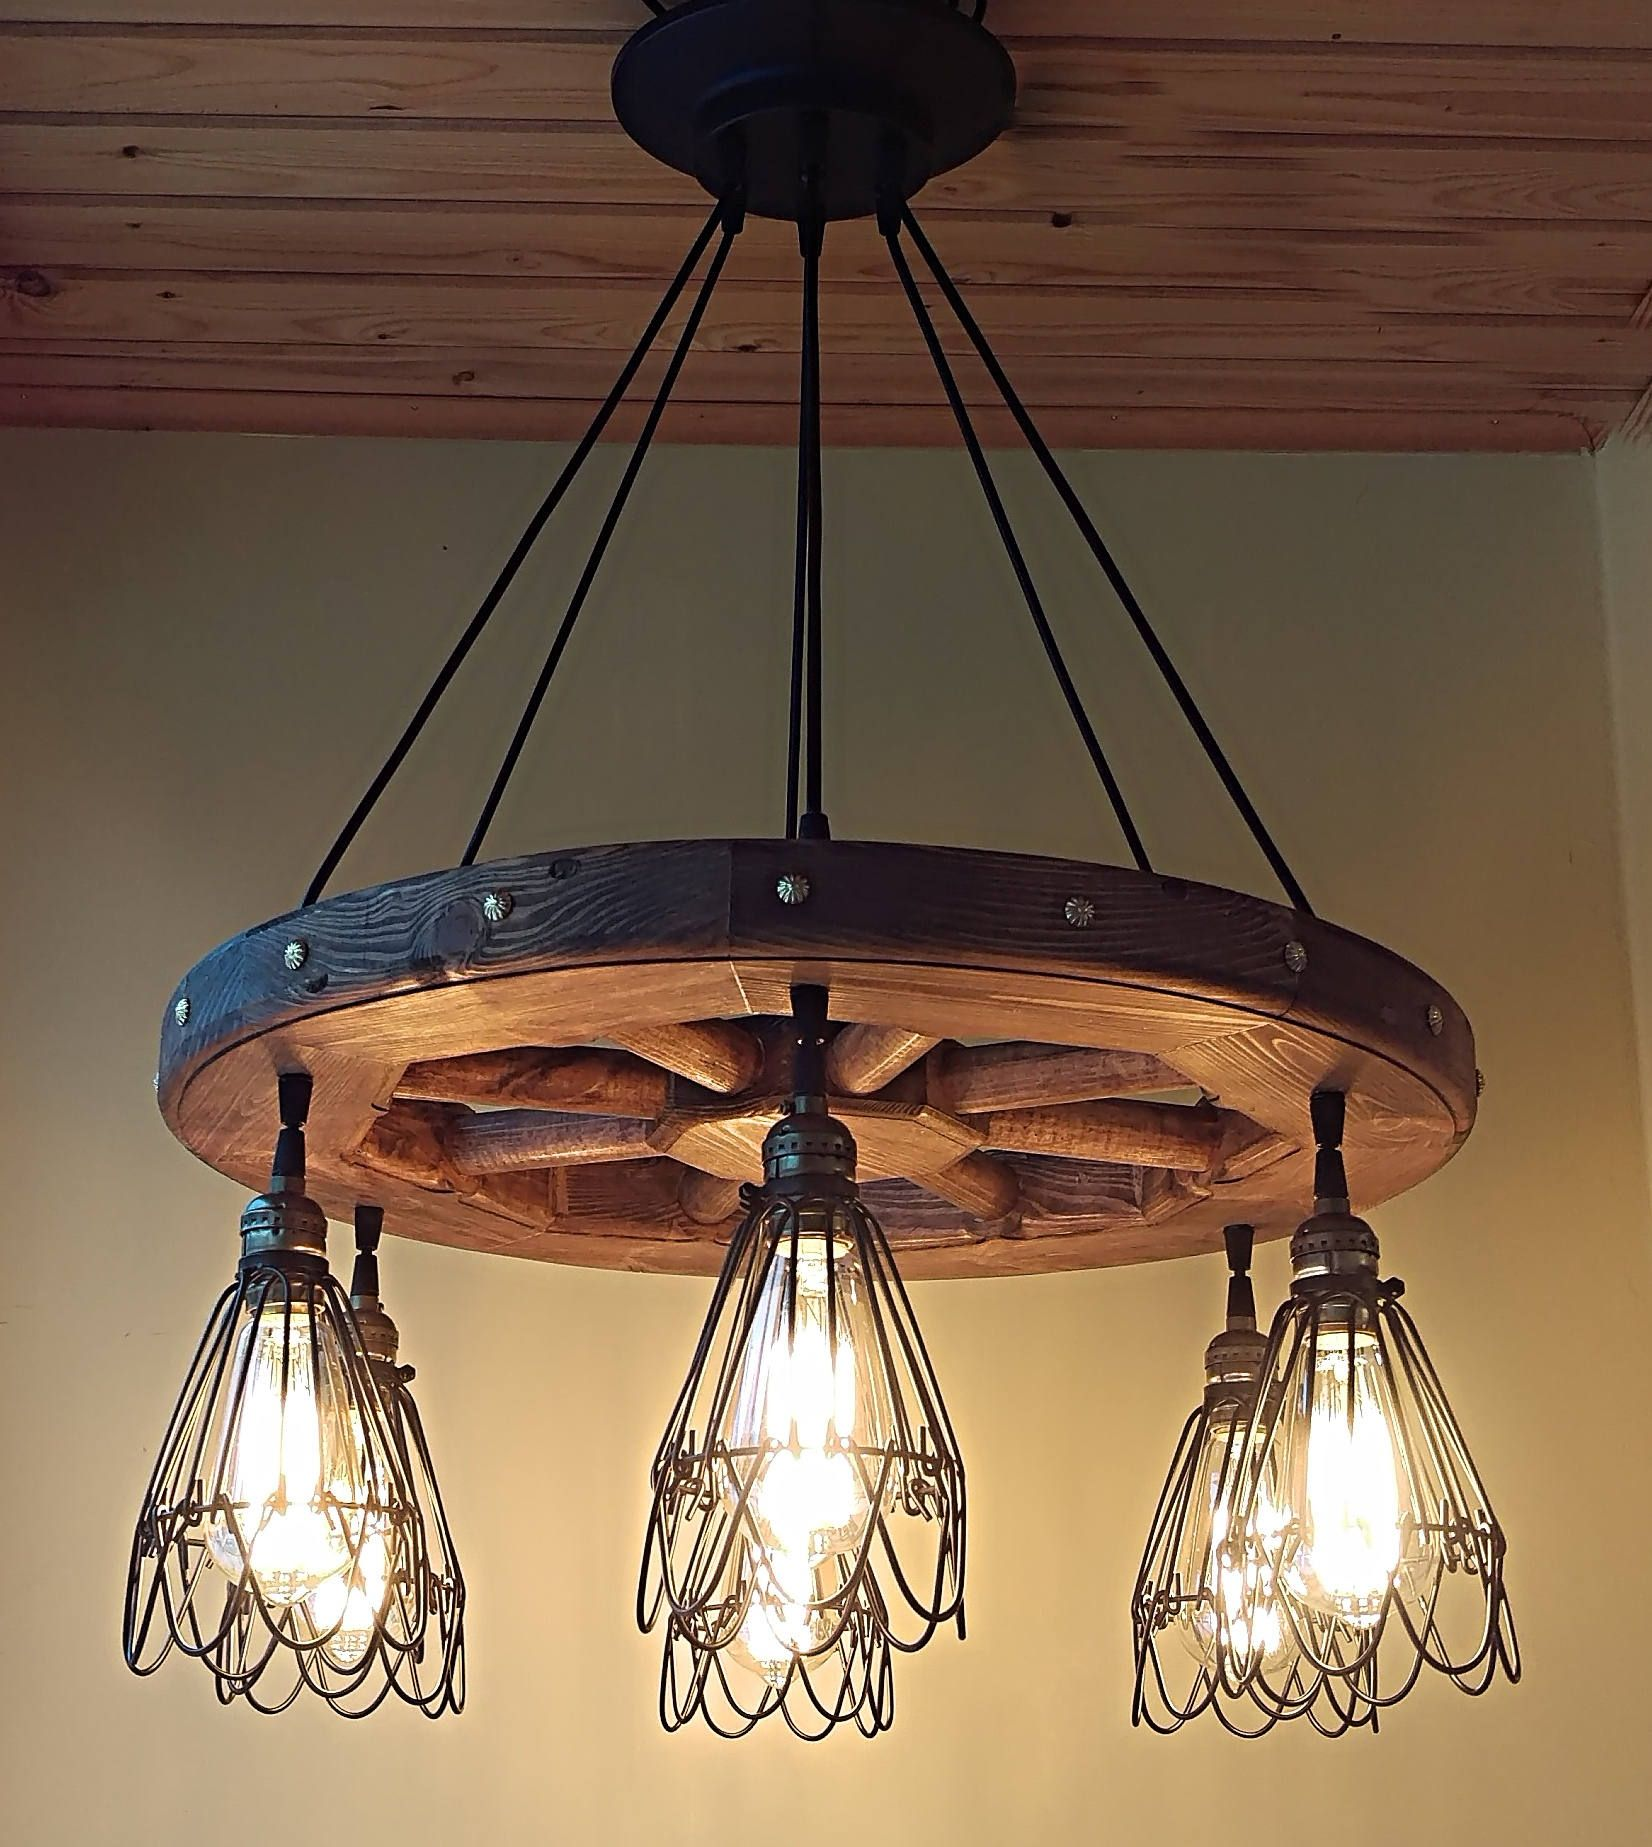 Industrial pendant light wood chandelier rustic handmade pendant